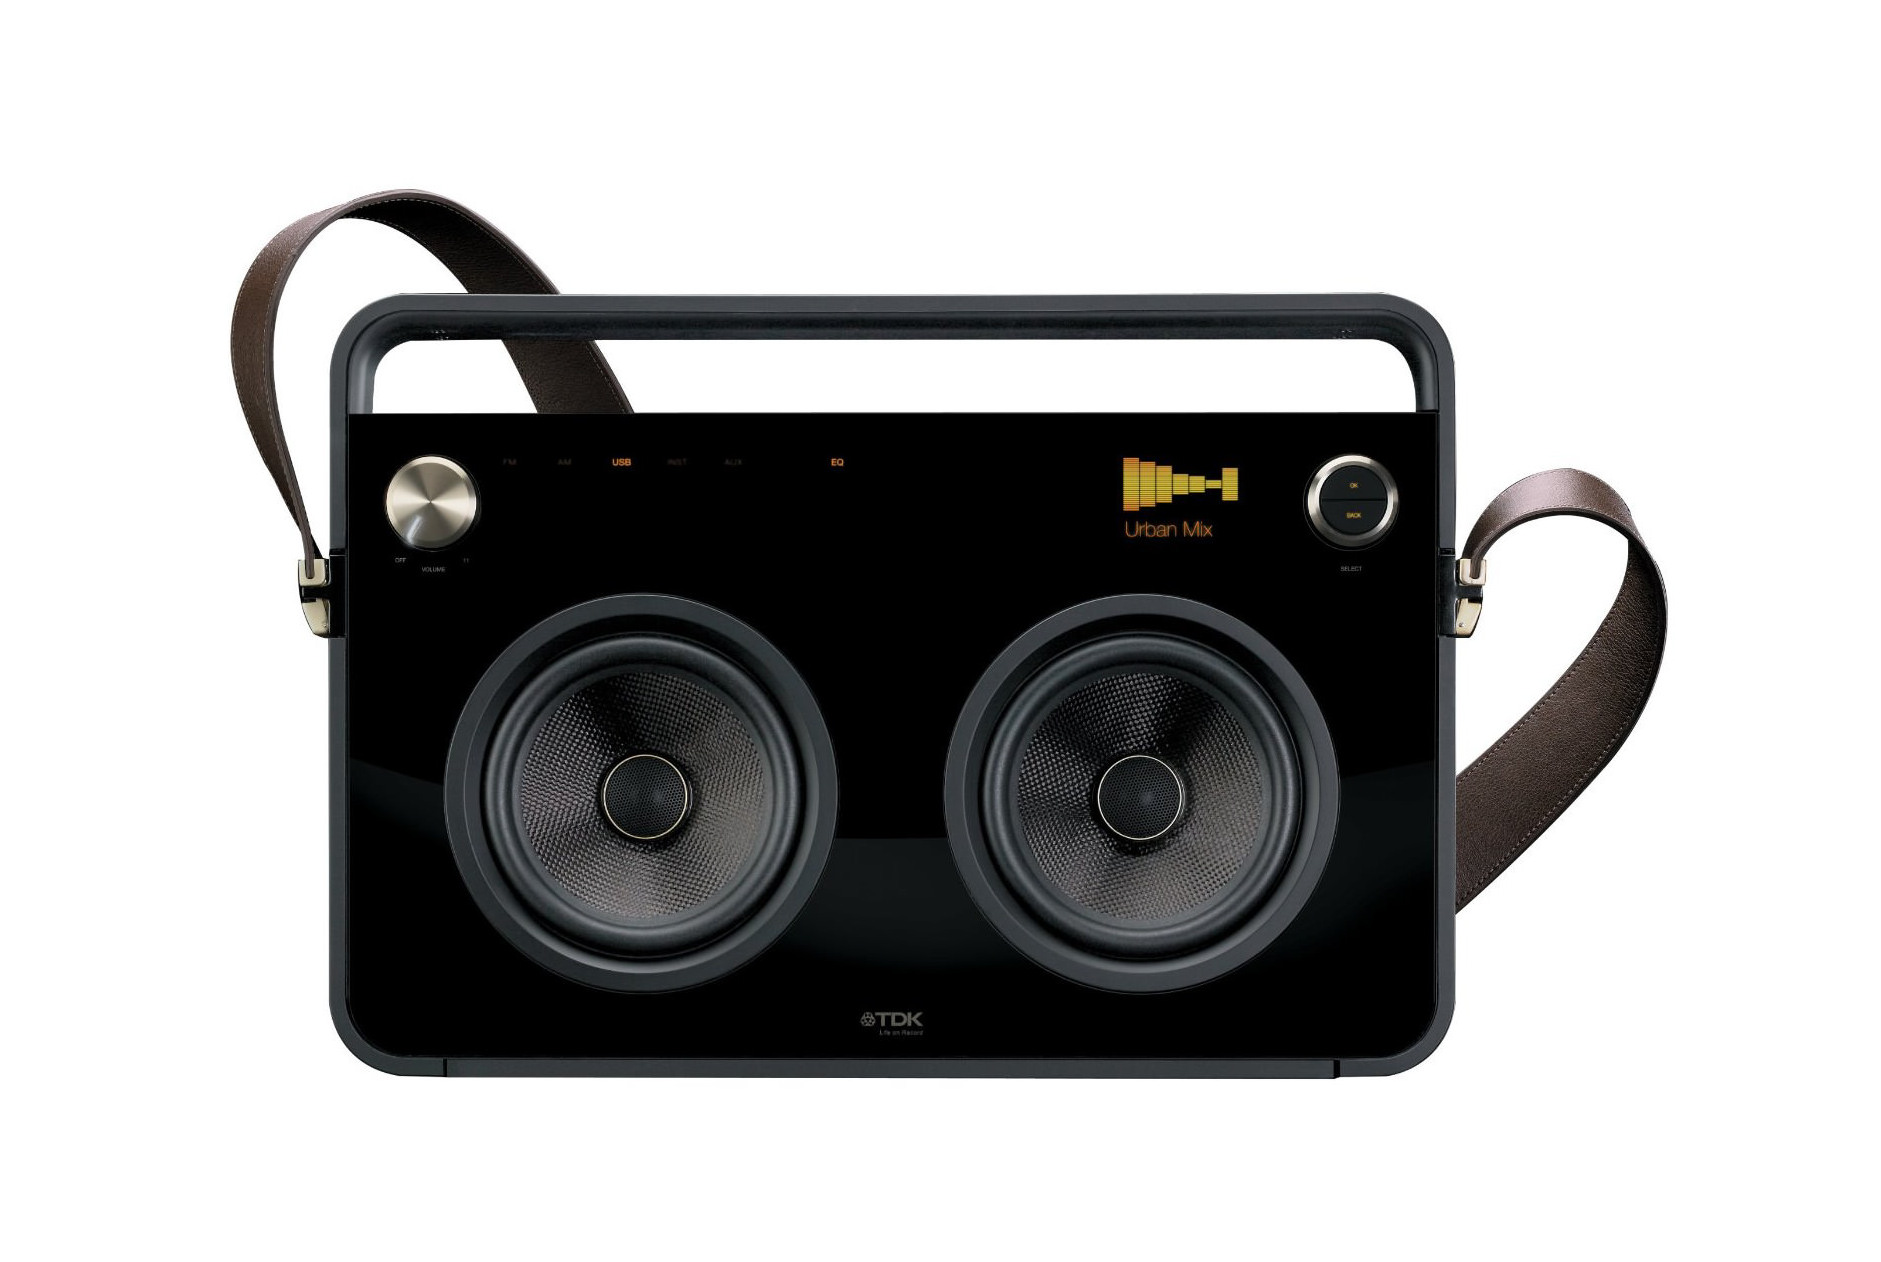 Pin And Boombox Wallpaper 1920x1080 Astronaut on Pinterest